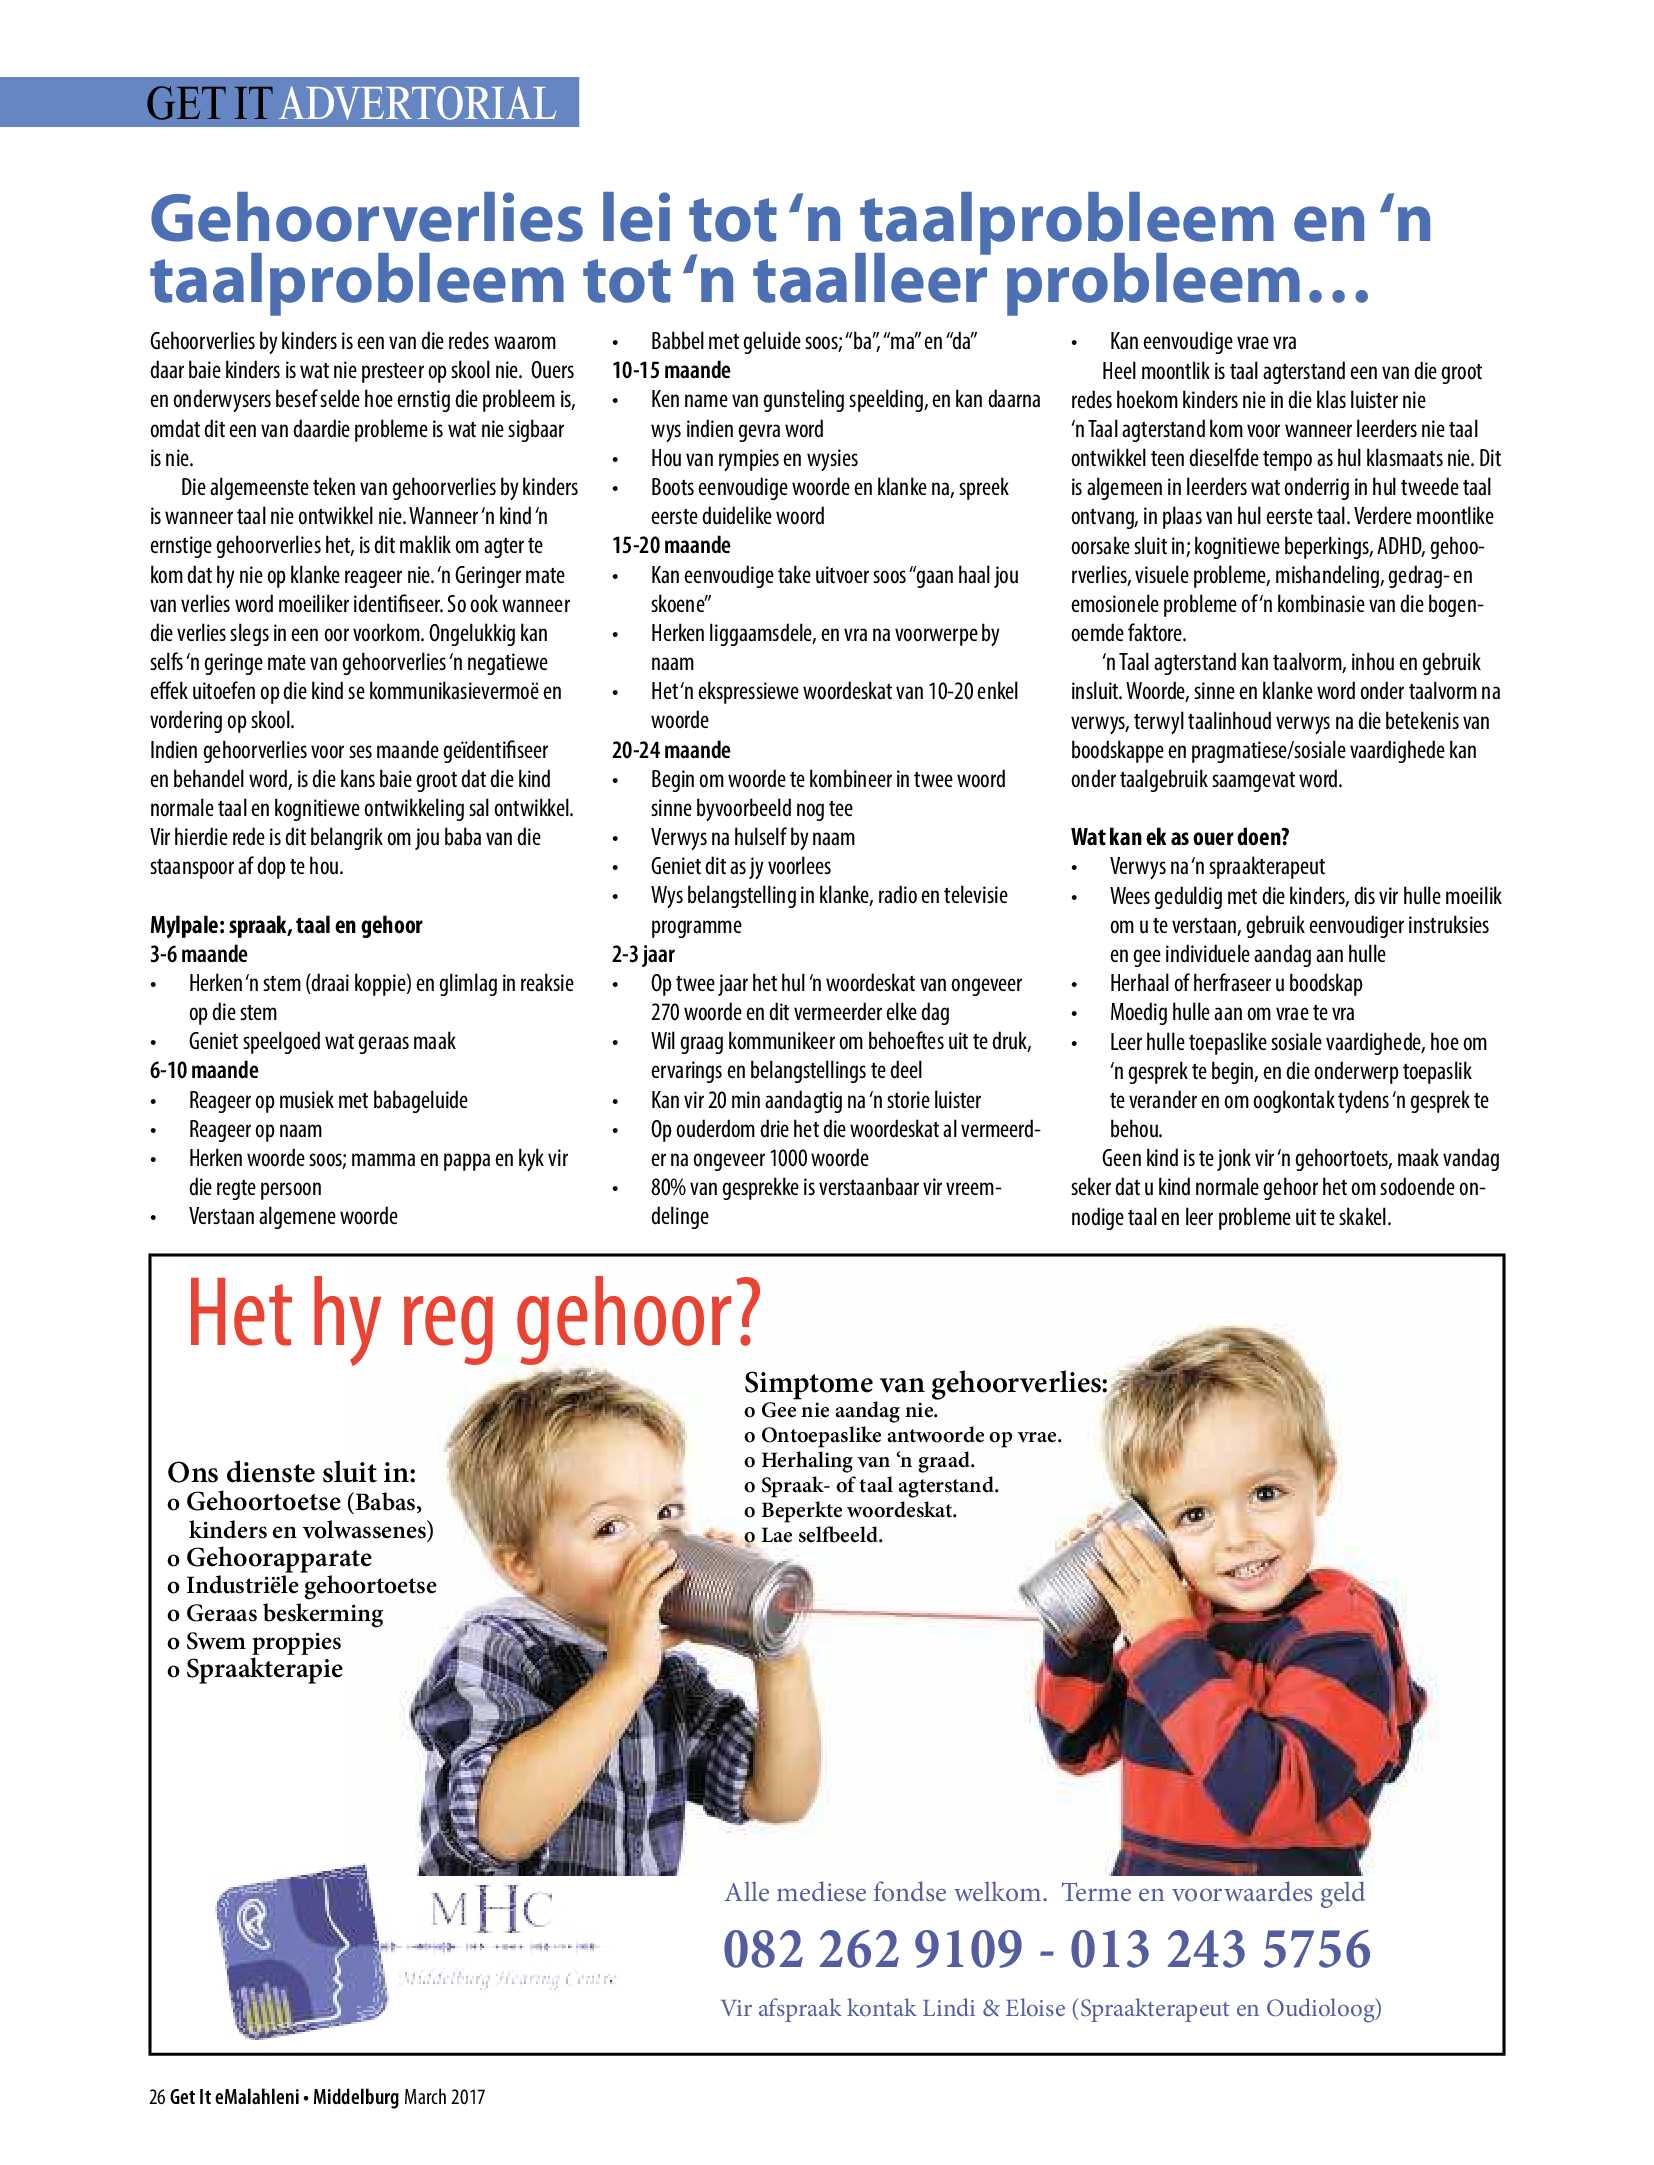 get-middelburg-march-2017-epapers-page-28